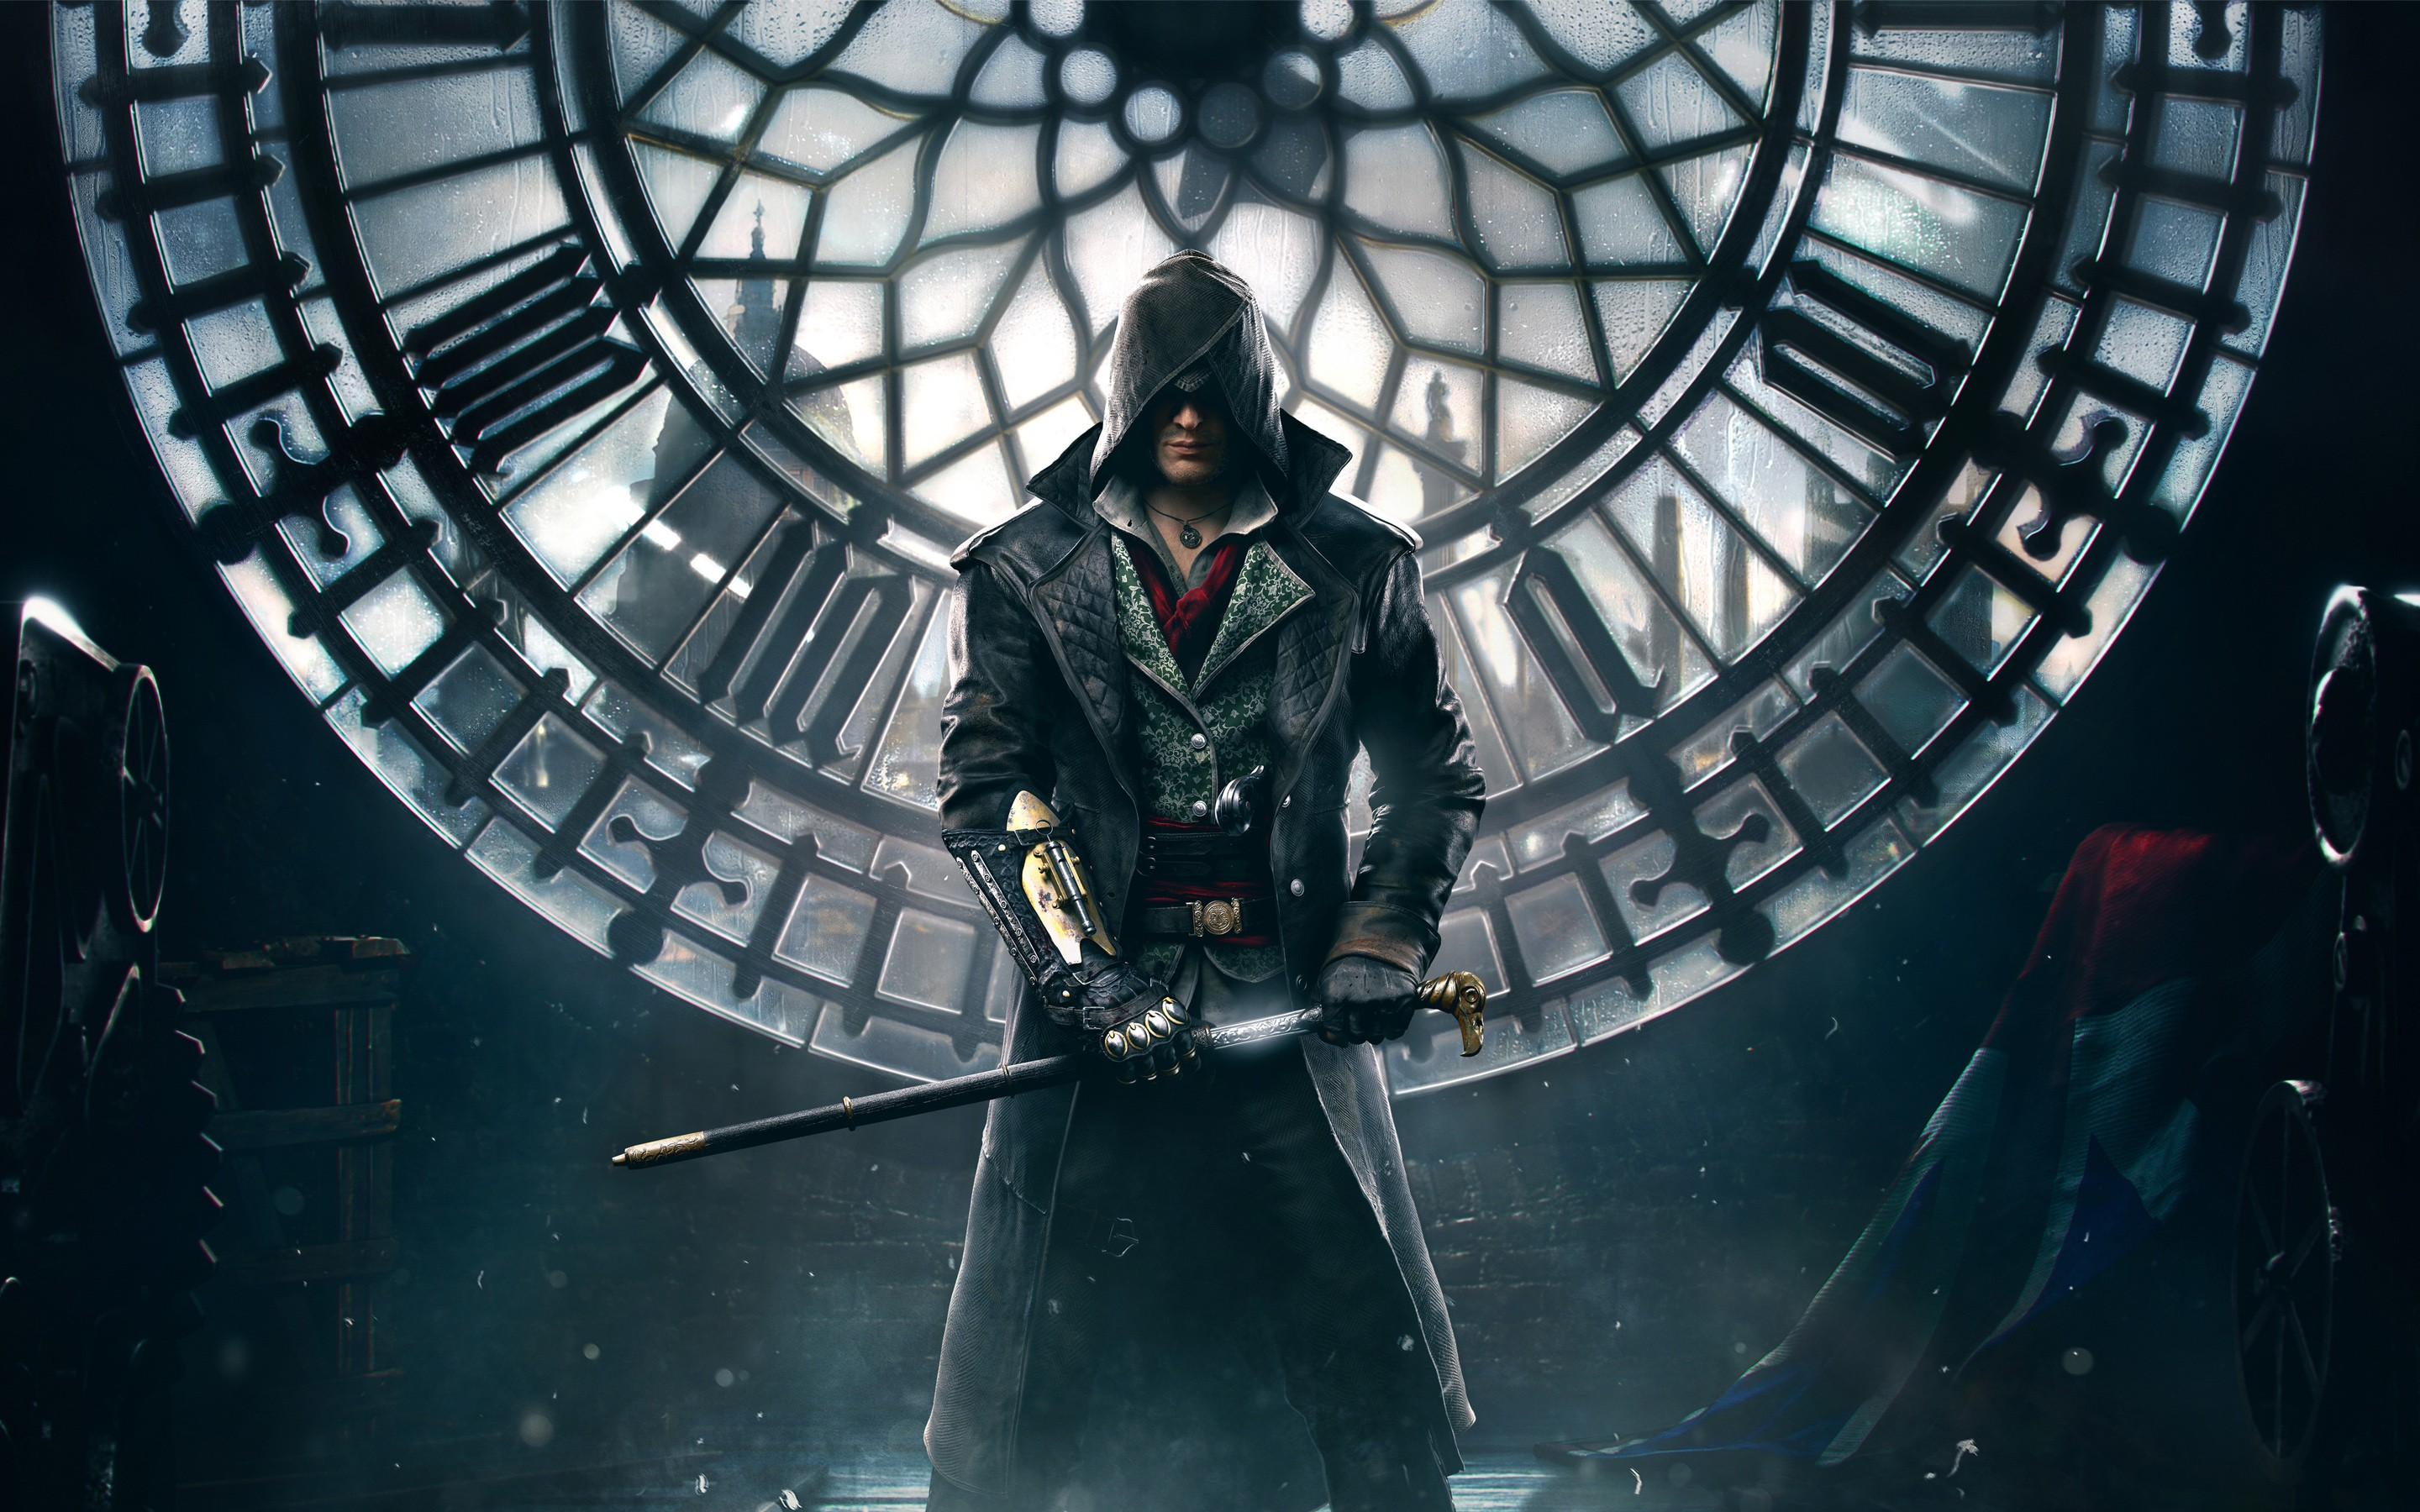 1920x1080 Pubg Android Game 4k Laptop Full Hd 1080p Hd 4k: Assassins Creed Syndicate Game 3, HD Games, 4k Wallpapers